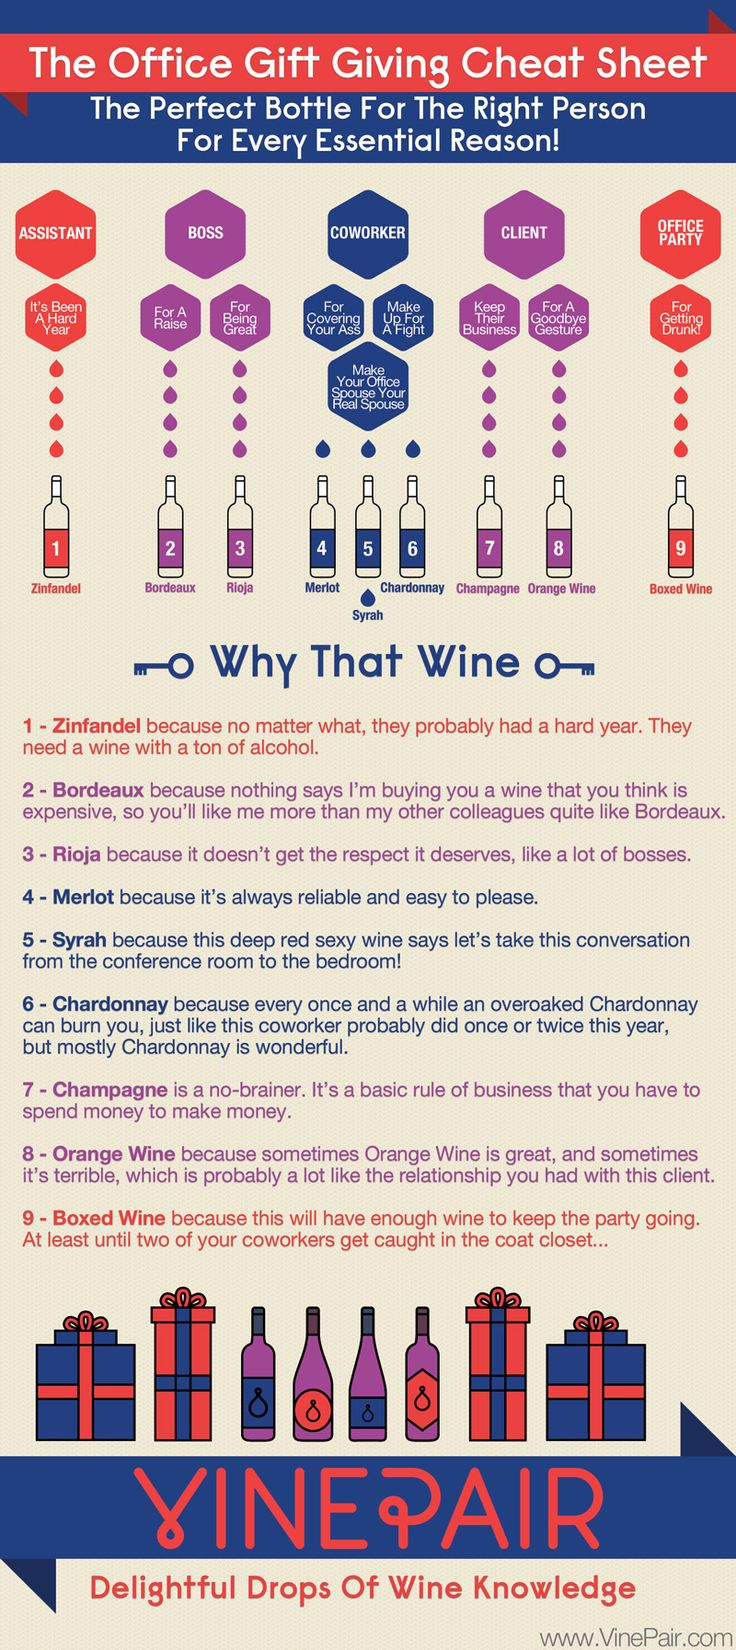 Looking for a great wine to give a colleague, client, boss, or assistant? How about a wine for the office party? We have a handy guide for selecting #wine for your office this holiday season! #infographic #vinepair #visualization #gift